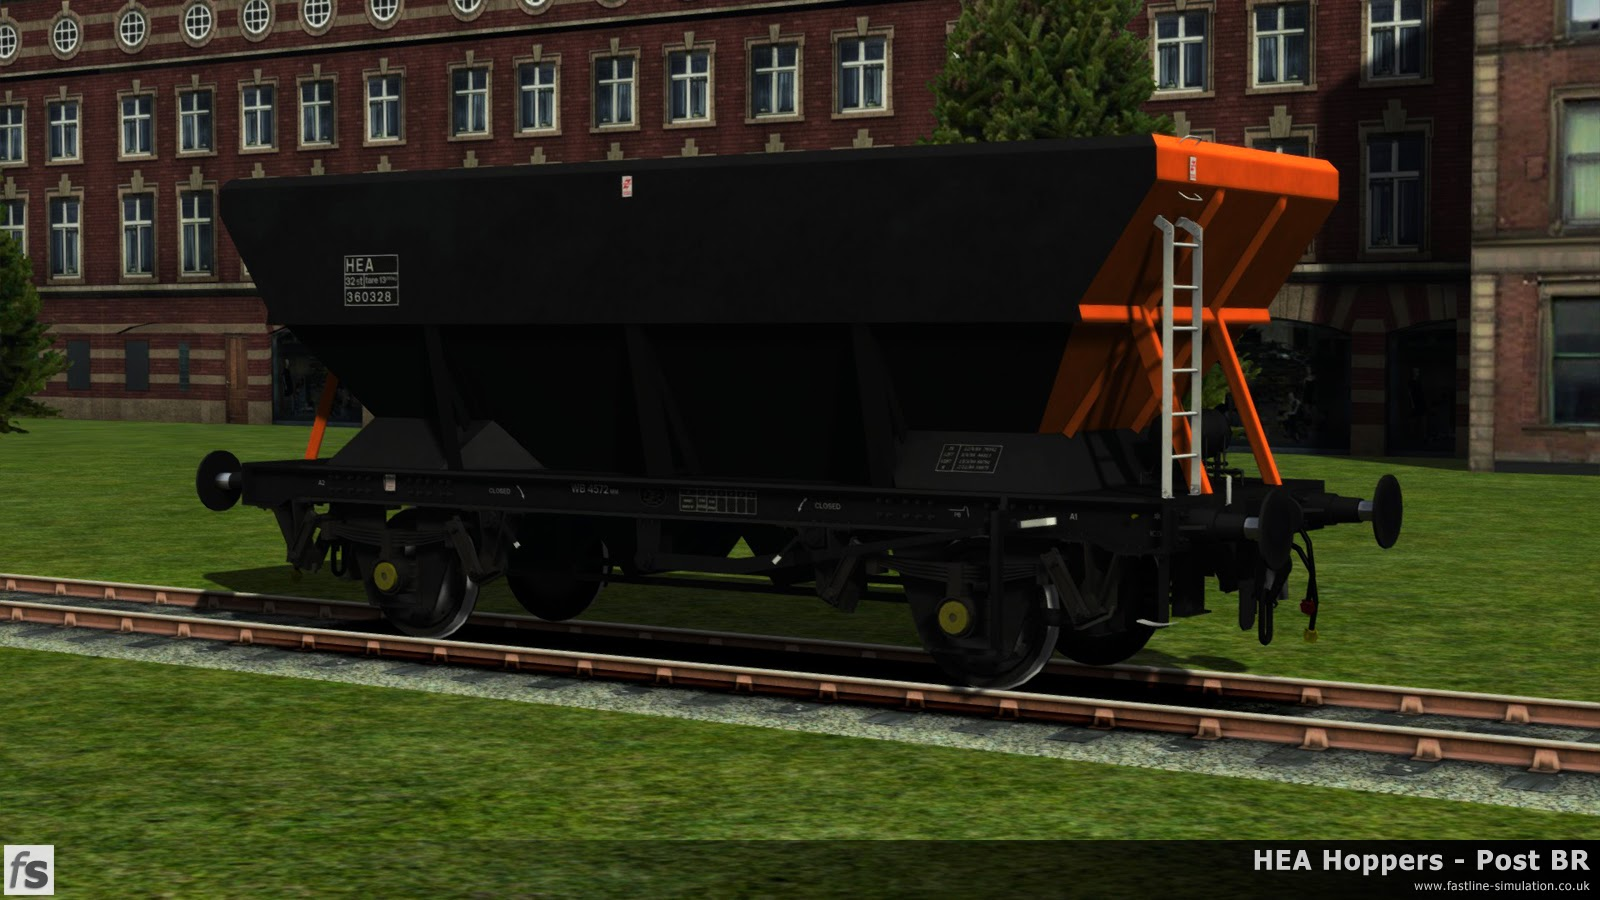 HEA Hoppers - Post BR: A work in progress picture of one of the later offset ladder HEA hoppers in almost ex-works Loadhaul livery under development for Train Simulator 2014.